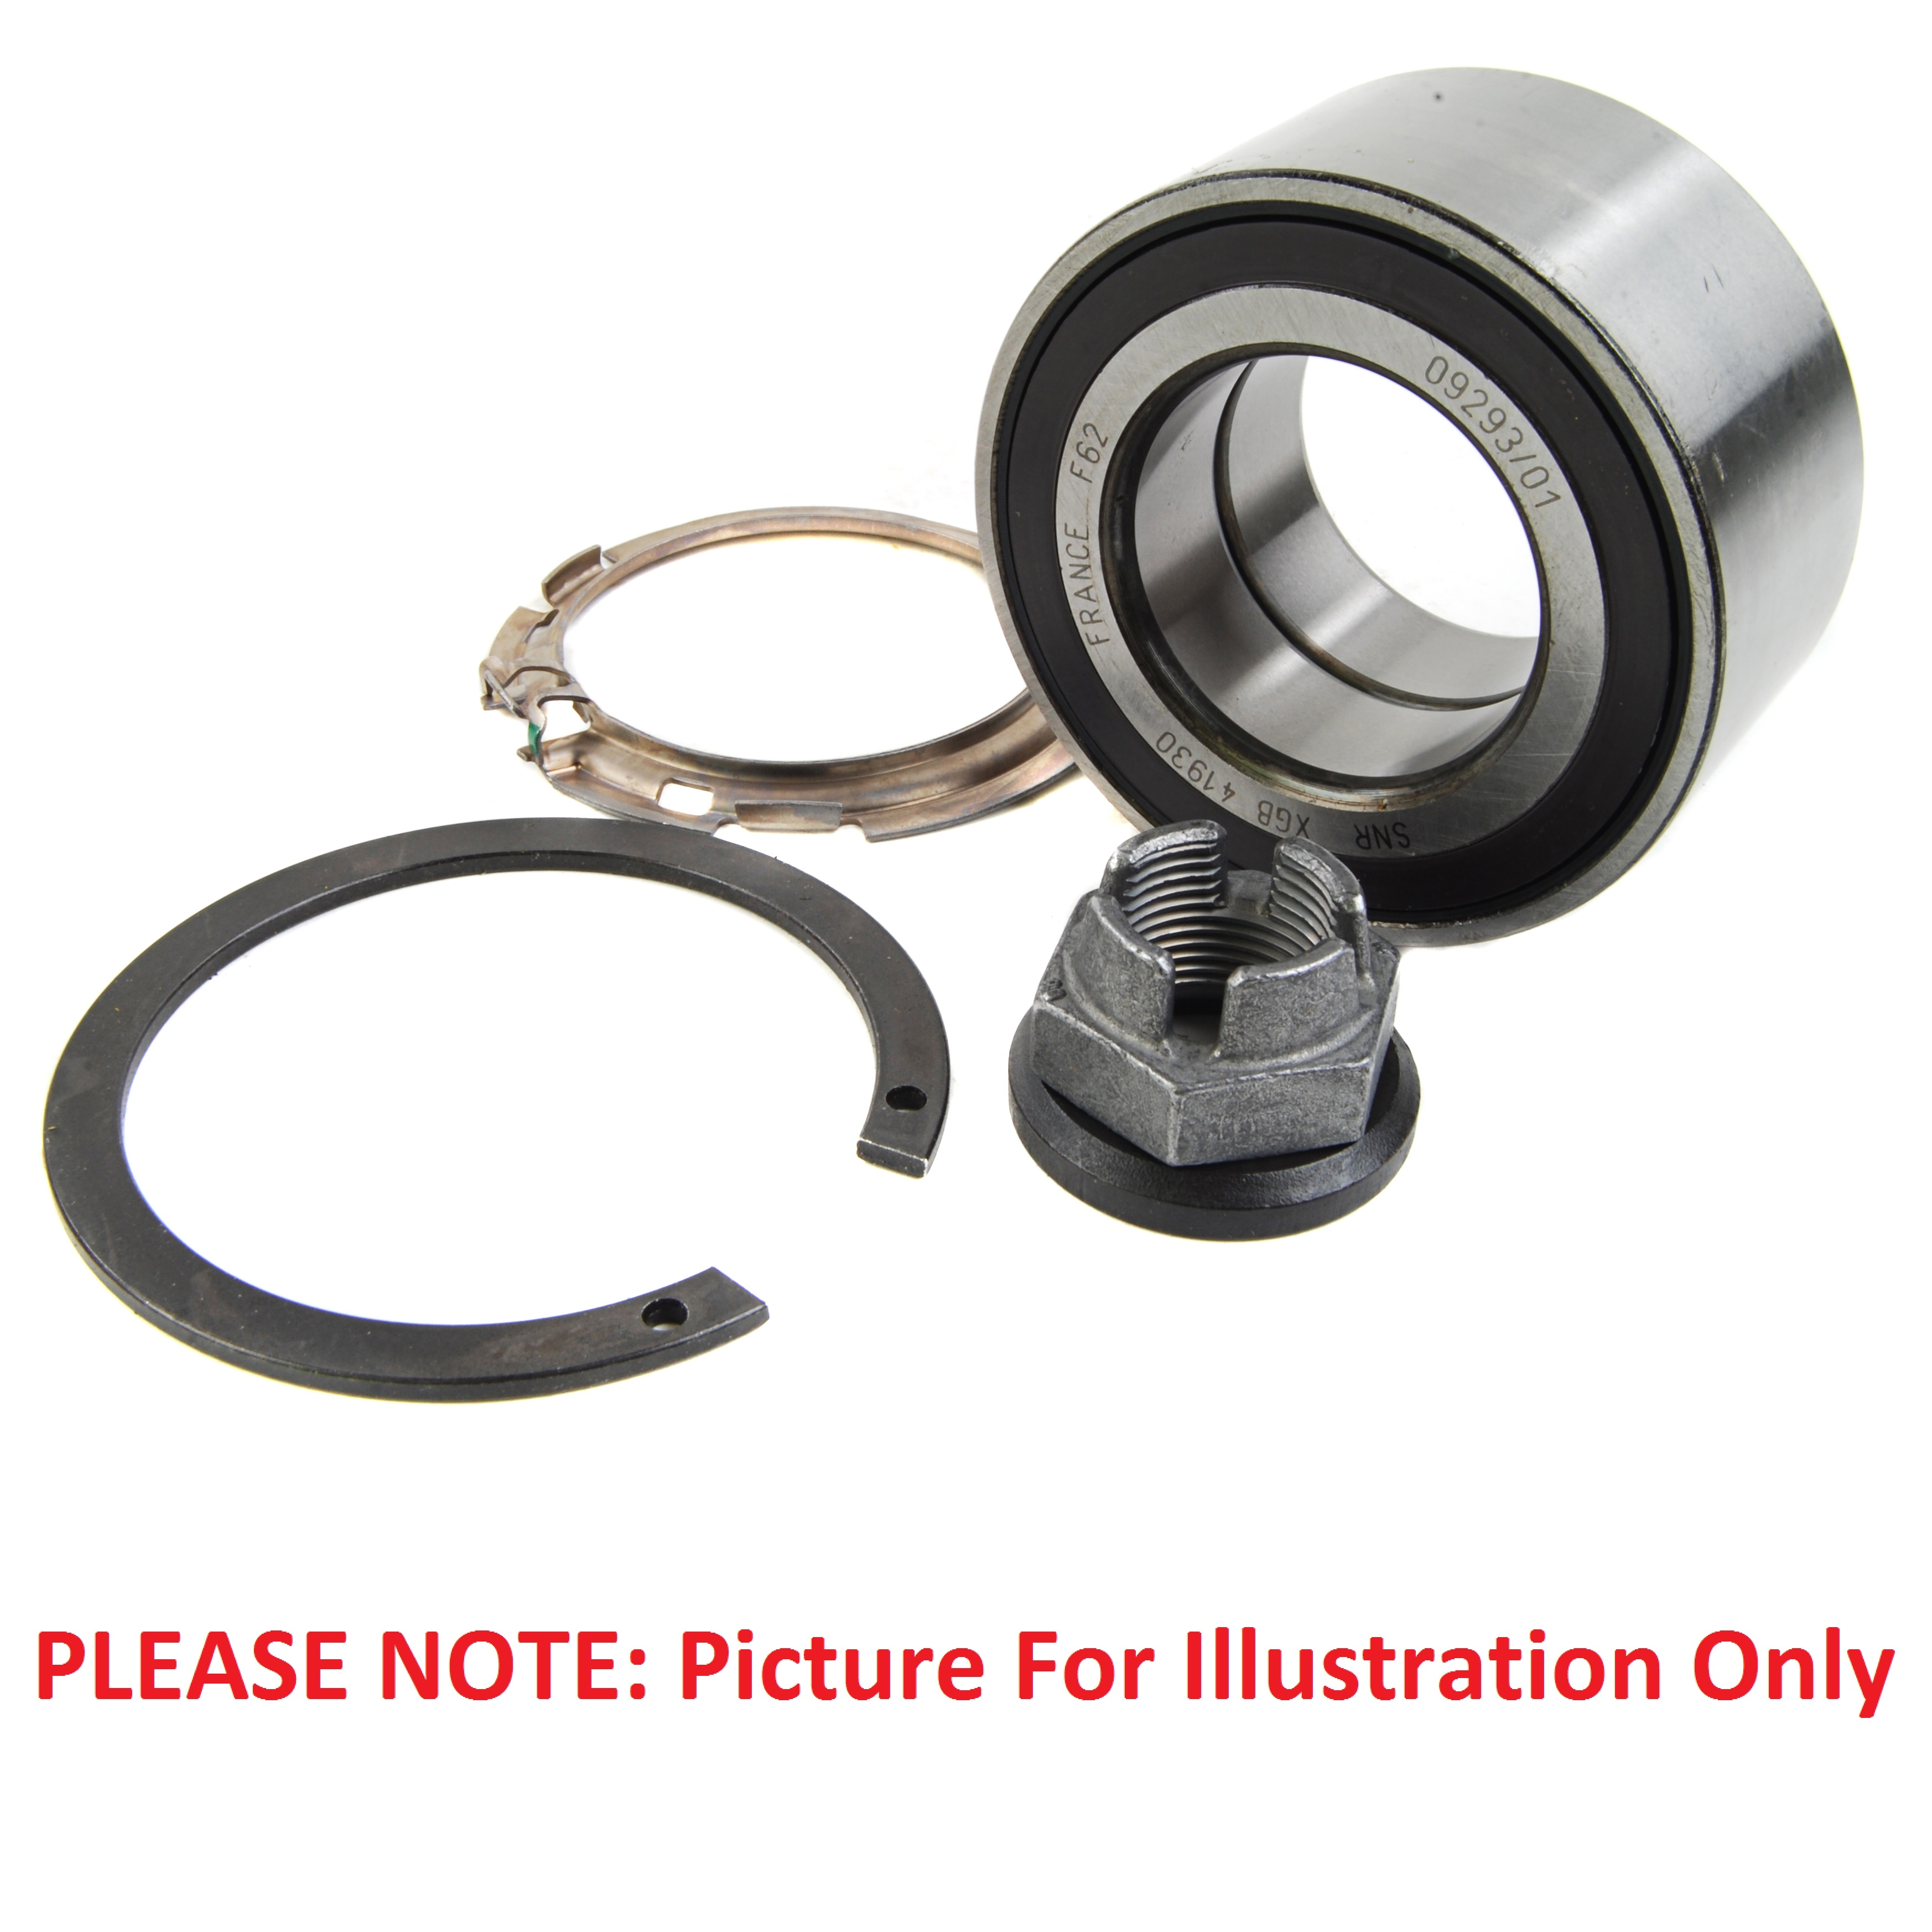 Details about Fits Subaru Impreza Forester Legacy Outback - Replacement  Front Wheel Bearing